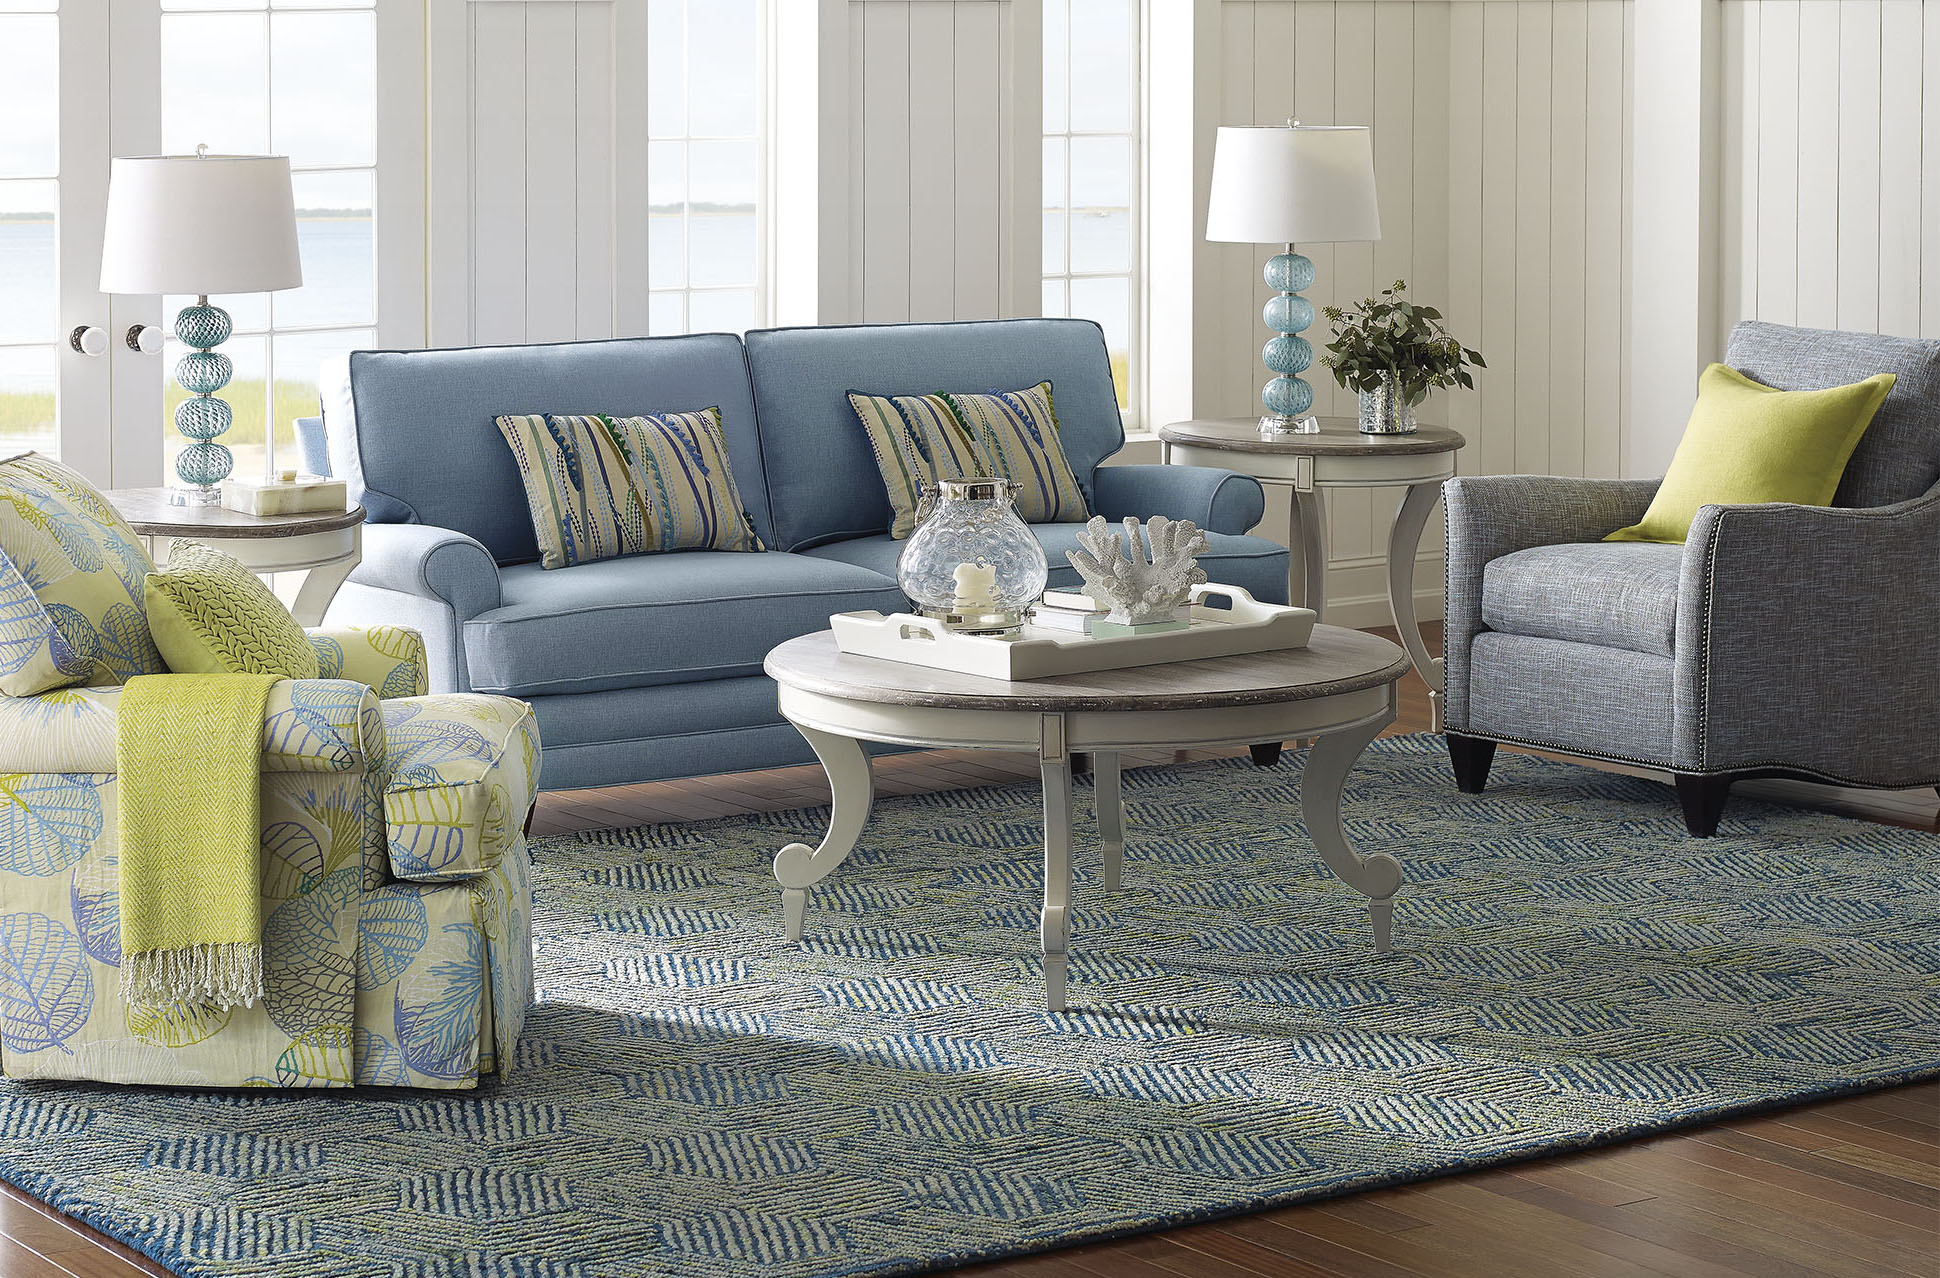 Fascinating Decorative Design company c rugs with harmony colors for indoor or outdoor ideas